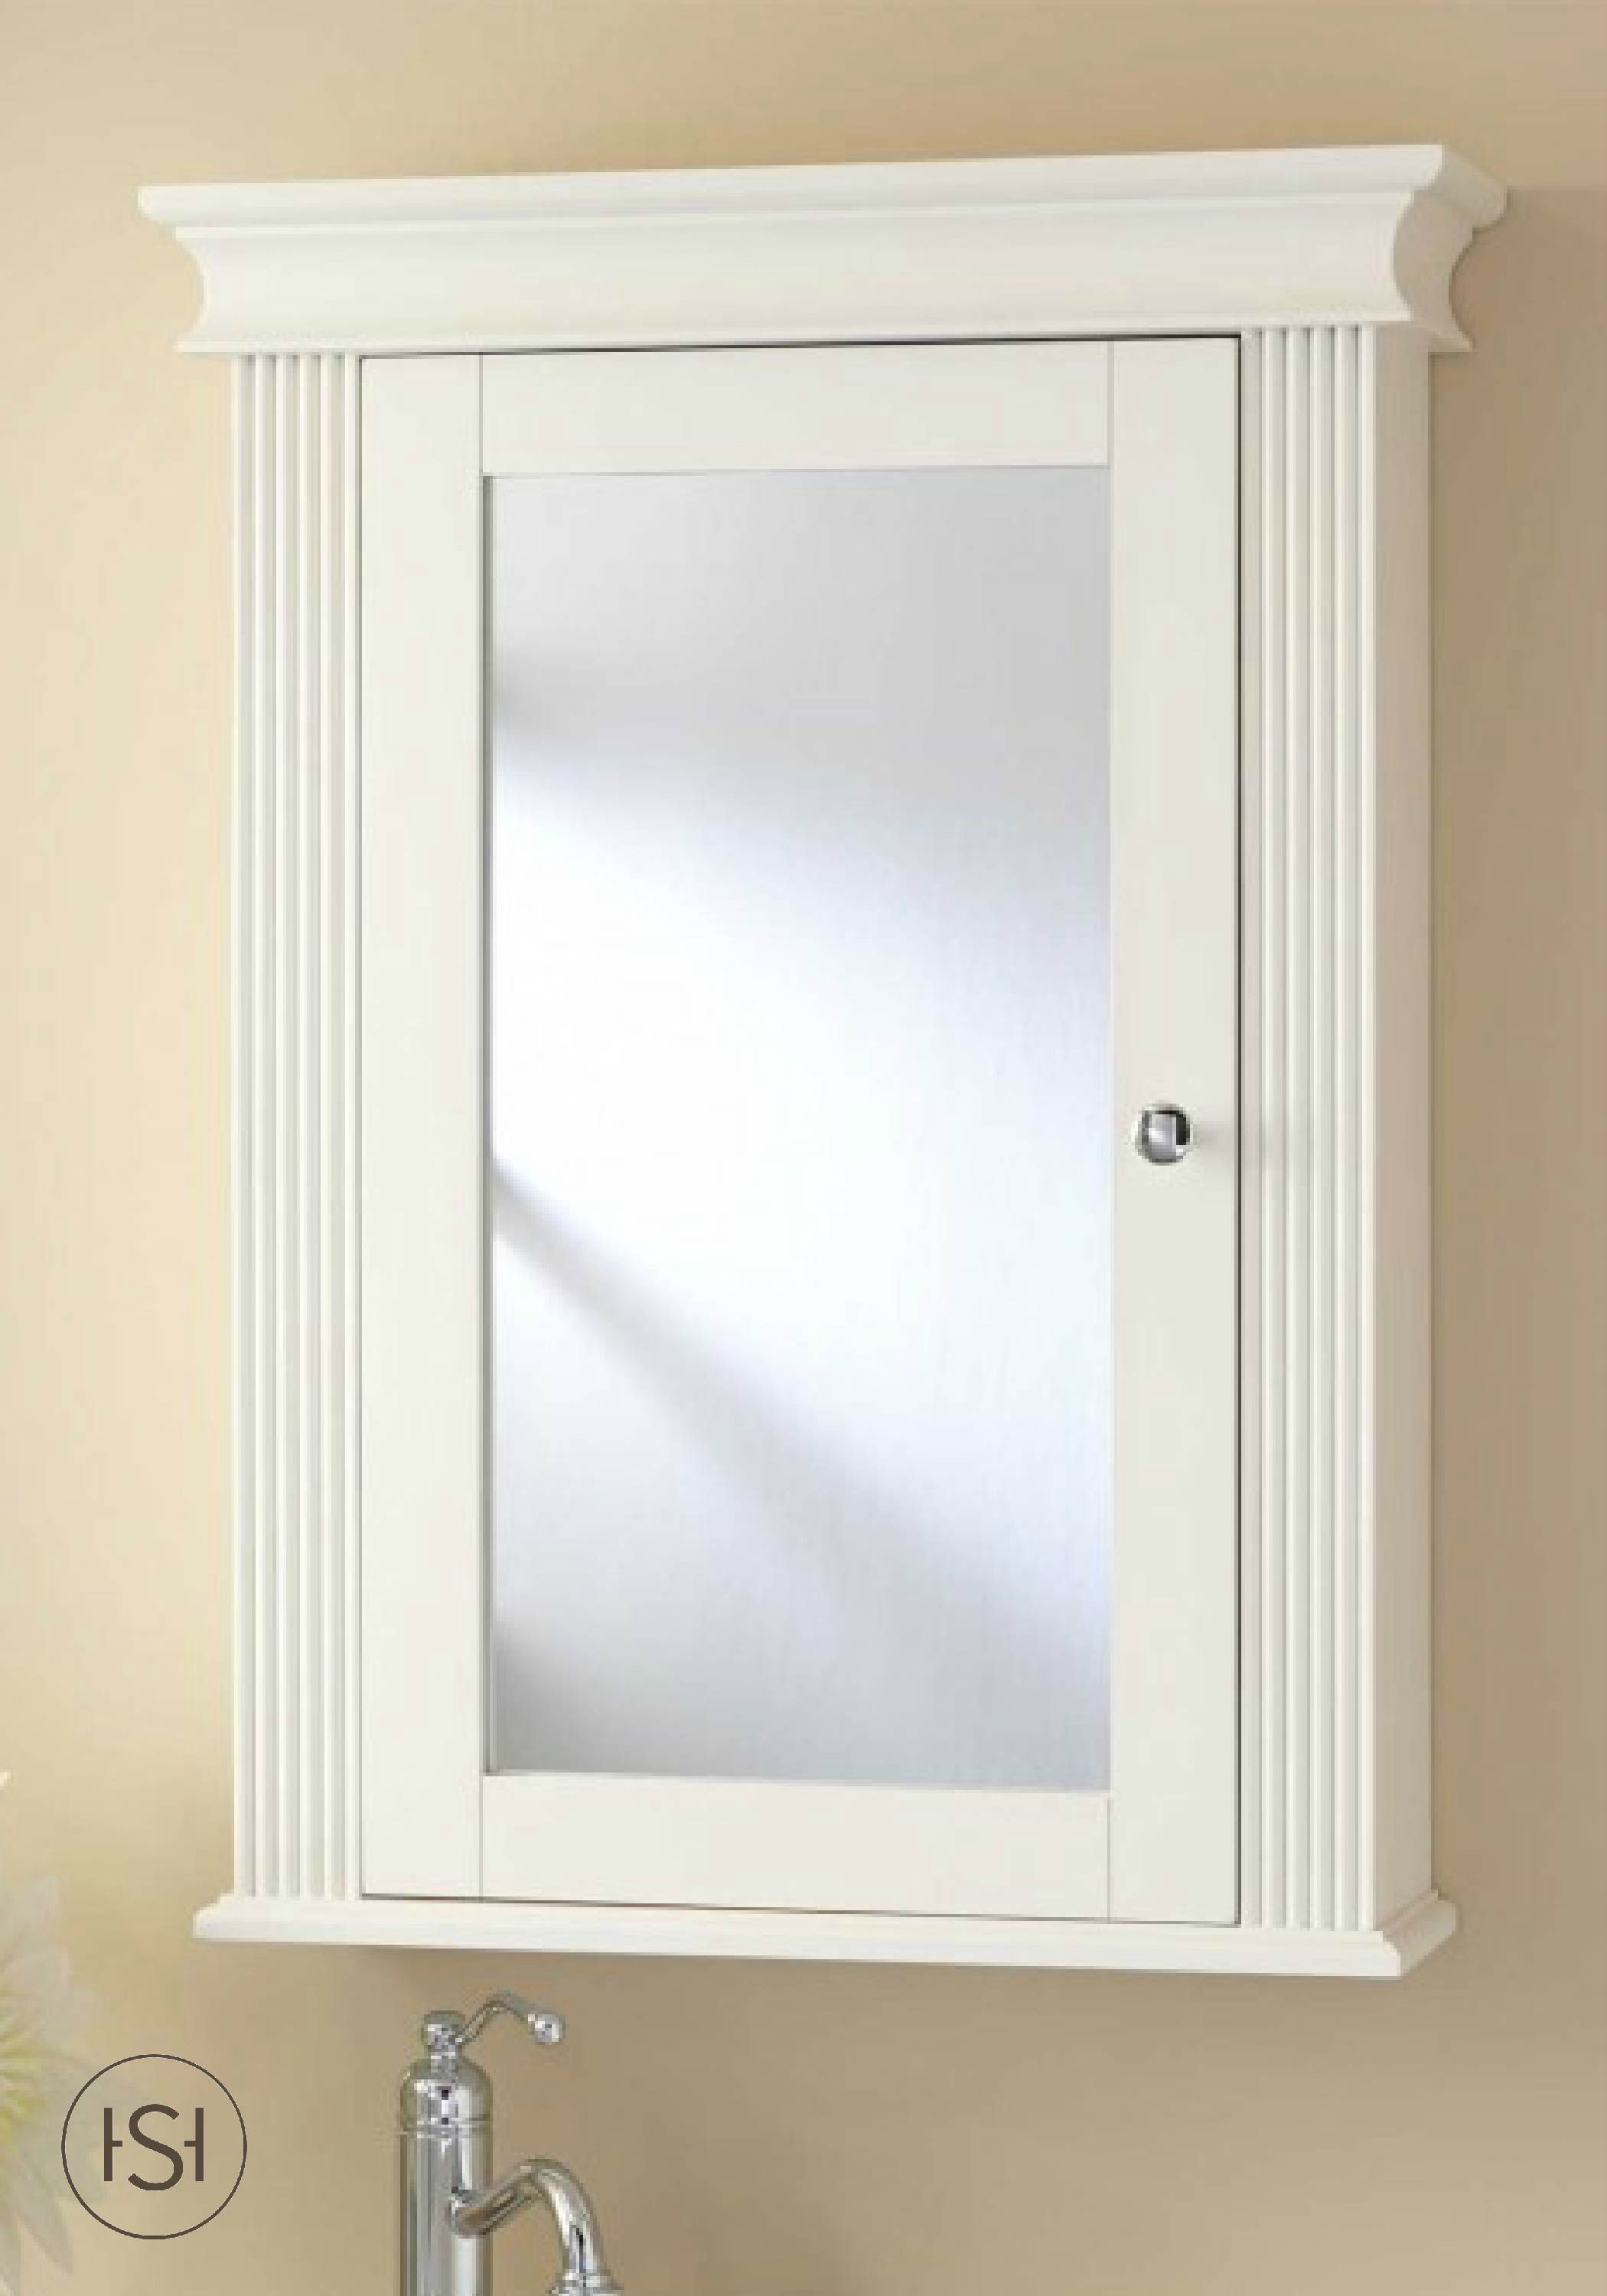 Finish Your Newly Remodeled Guest Bathroom With This Medicine Cabinet From Sign Medicine Cabinet Mirror Wall Mounted Medicine Cabinet Bathroom Medicine Cabinet